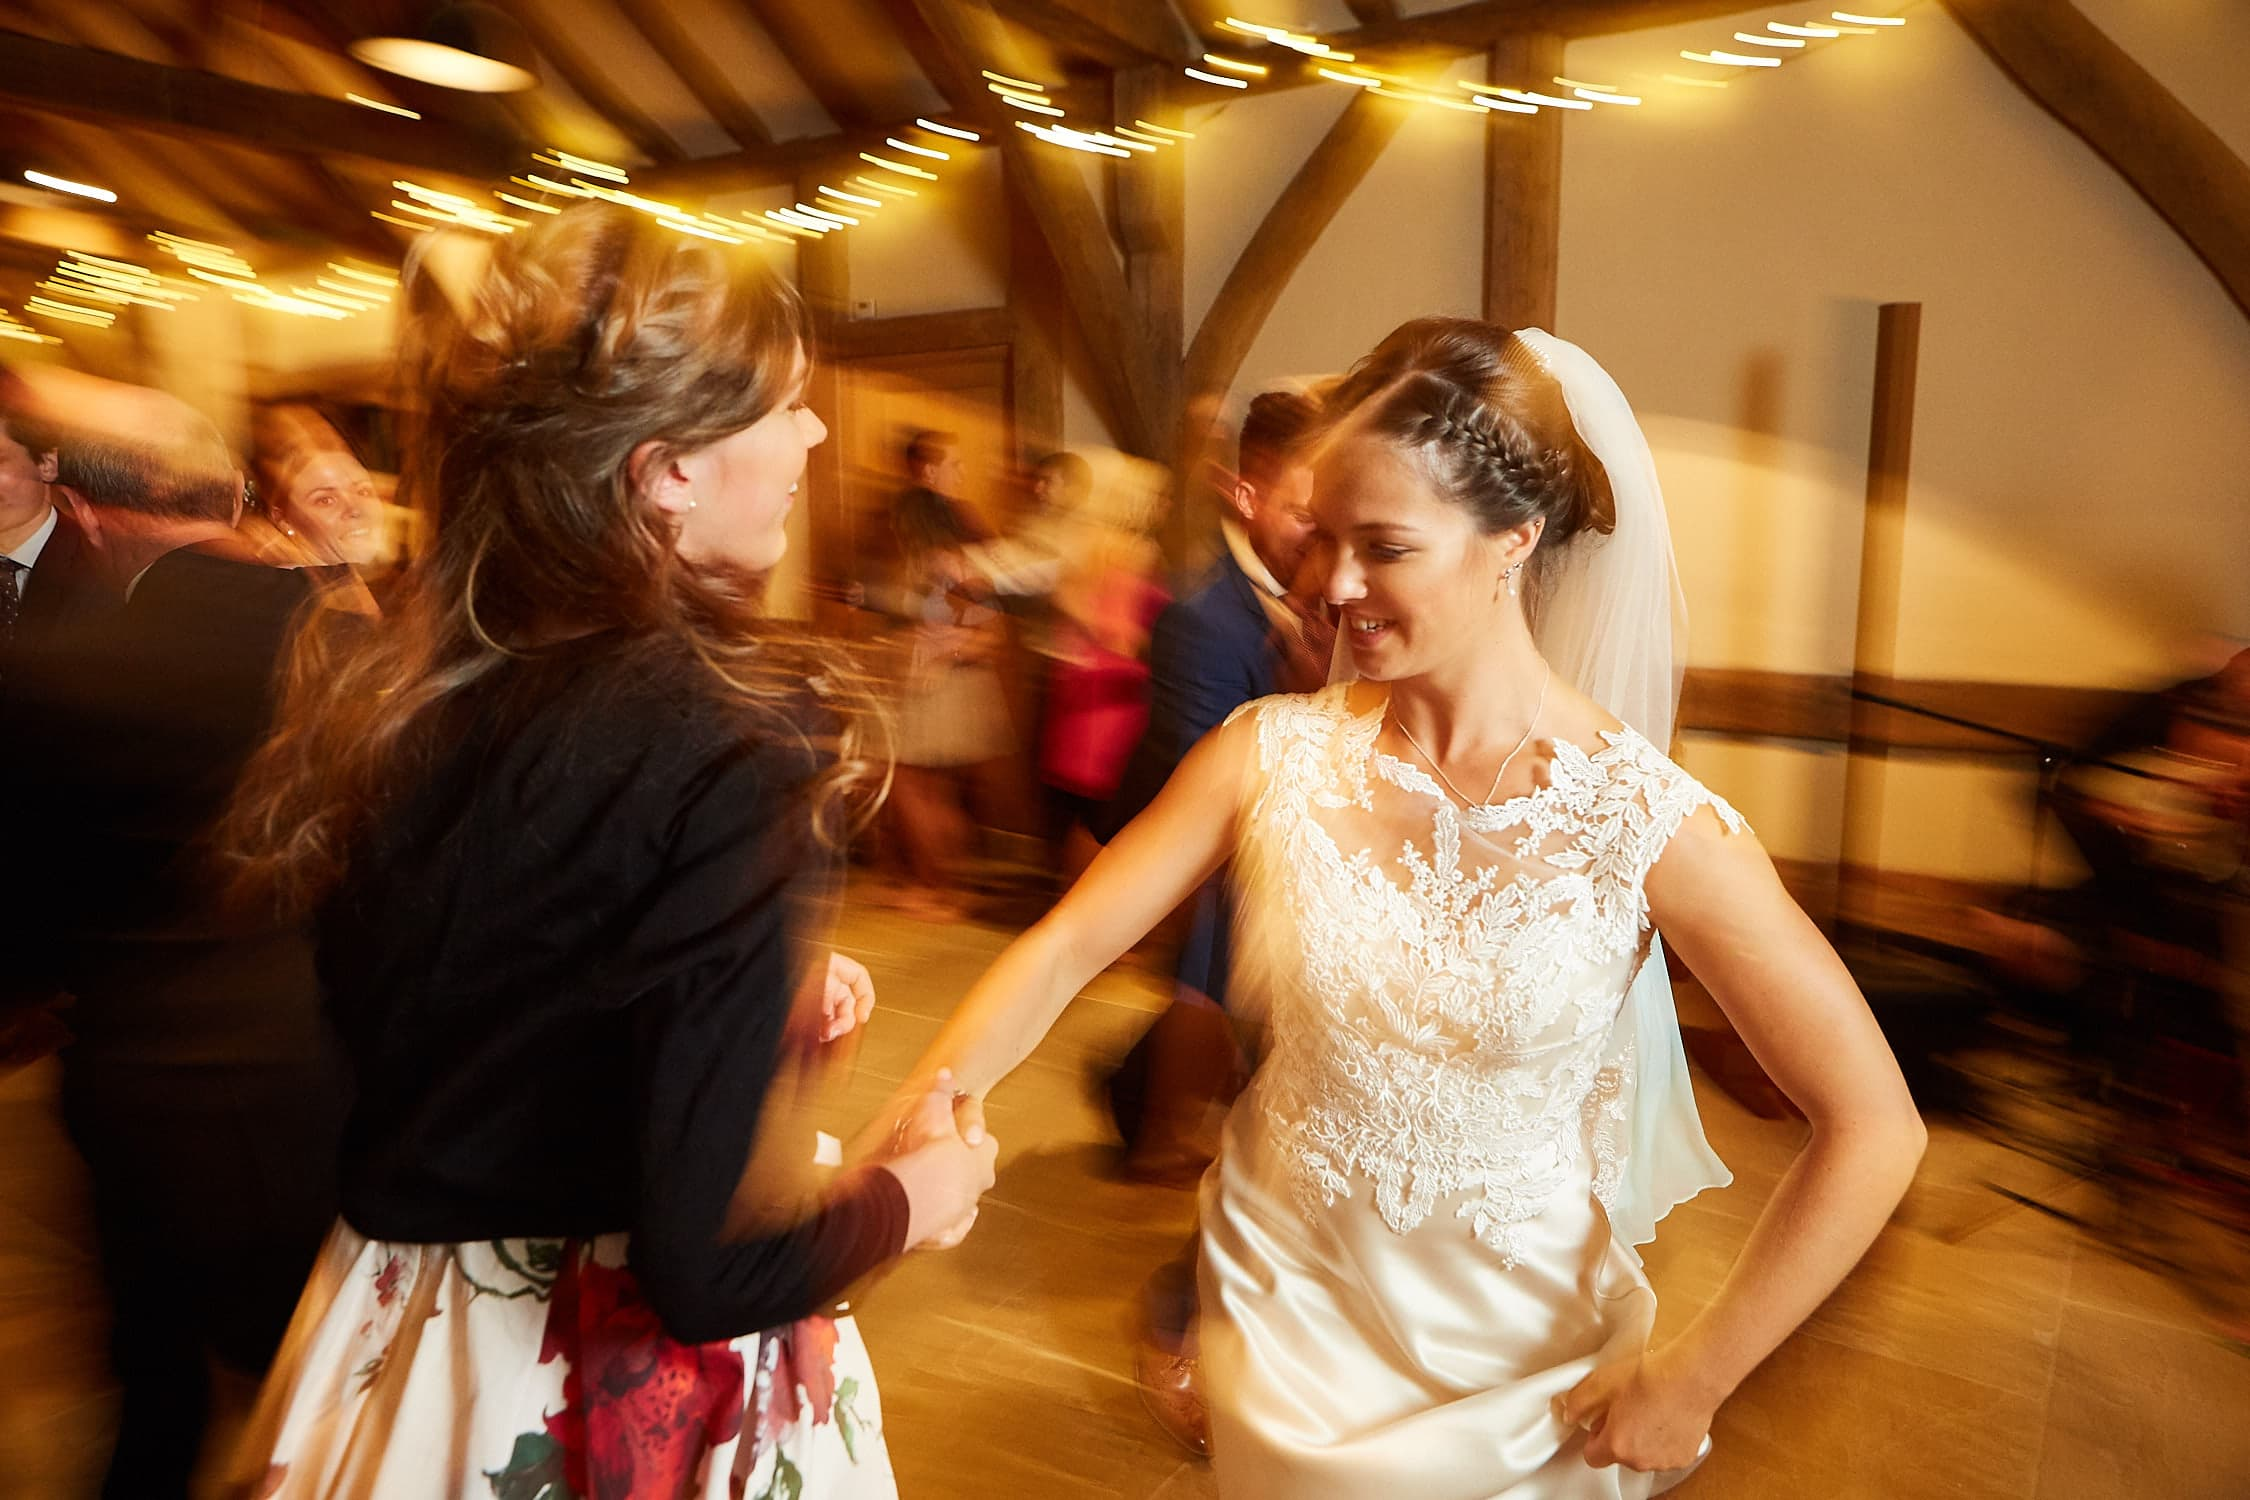 Bride dancing with friend on wedding day